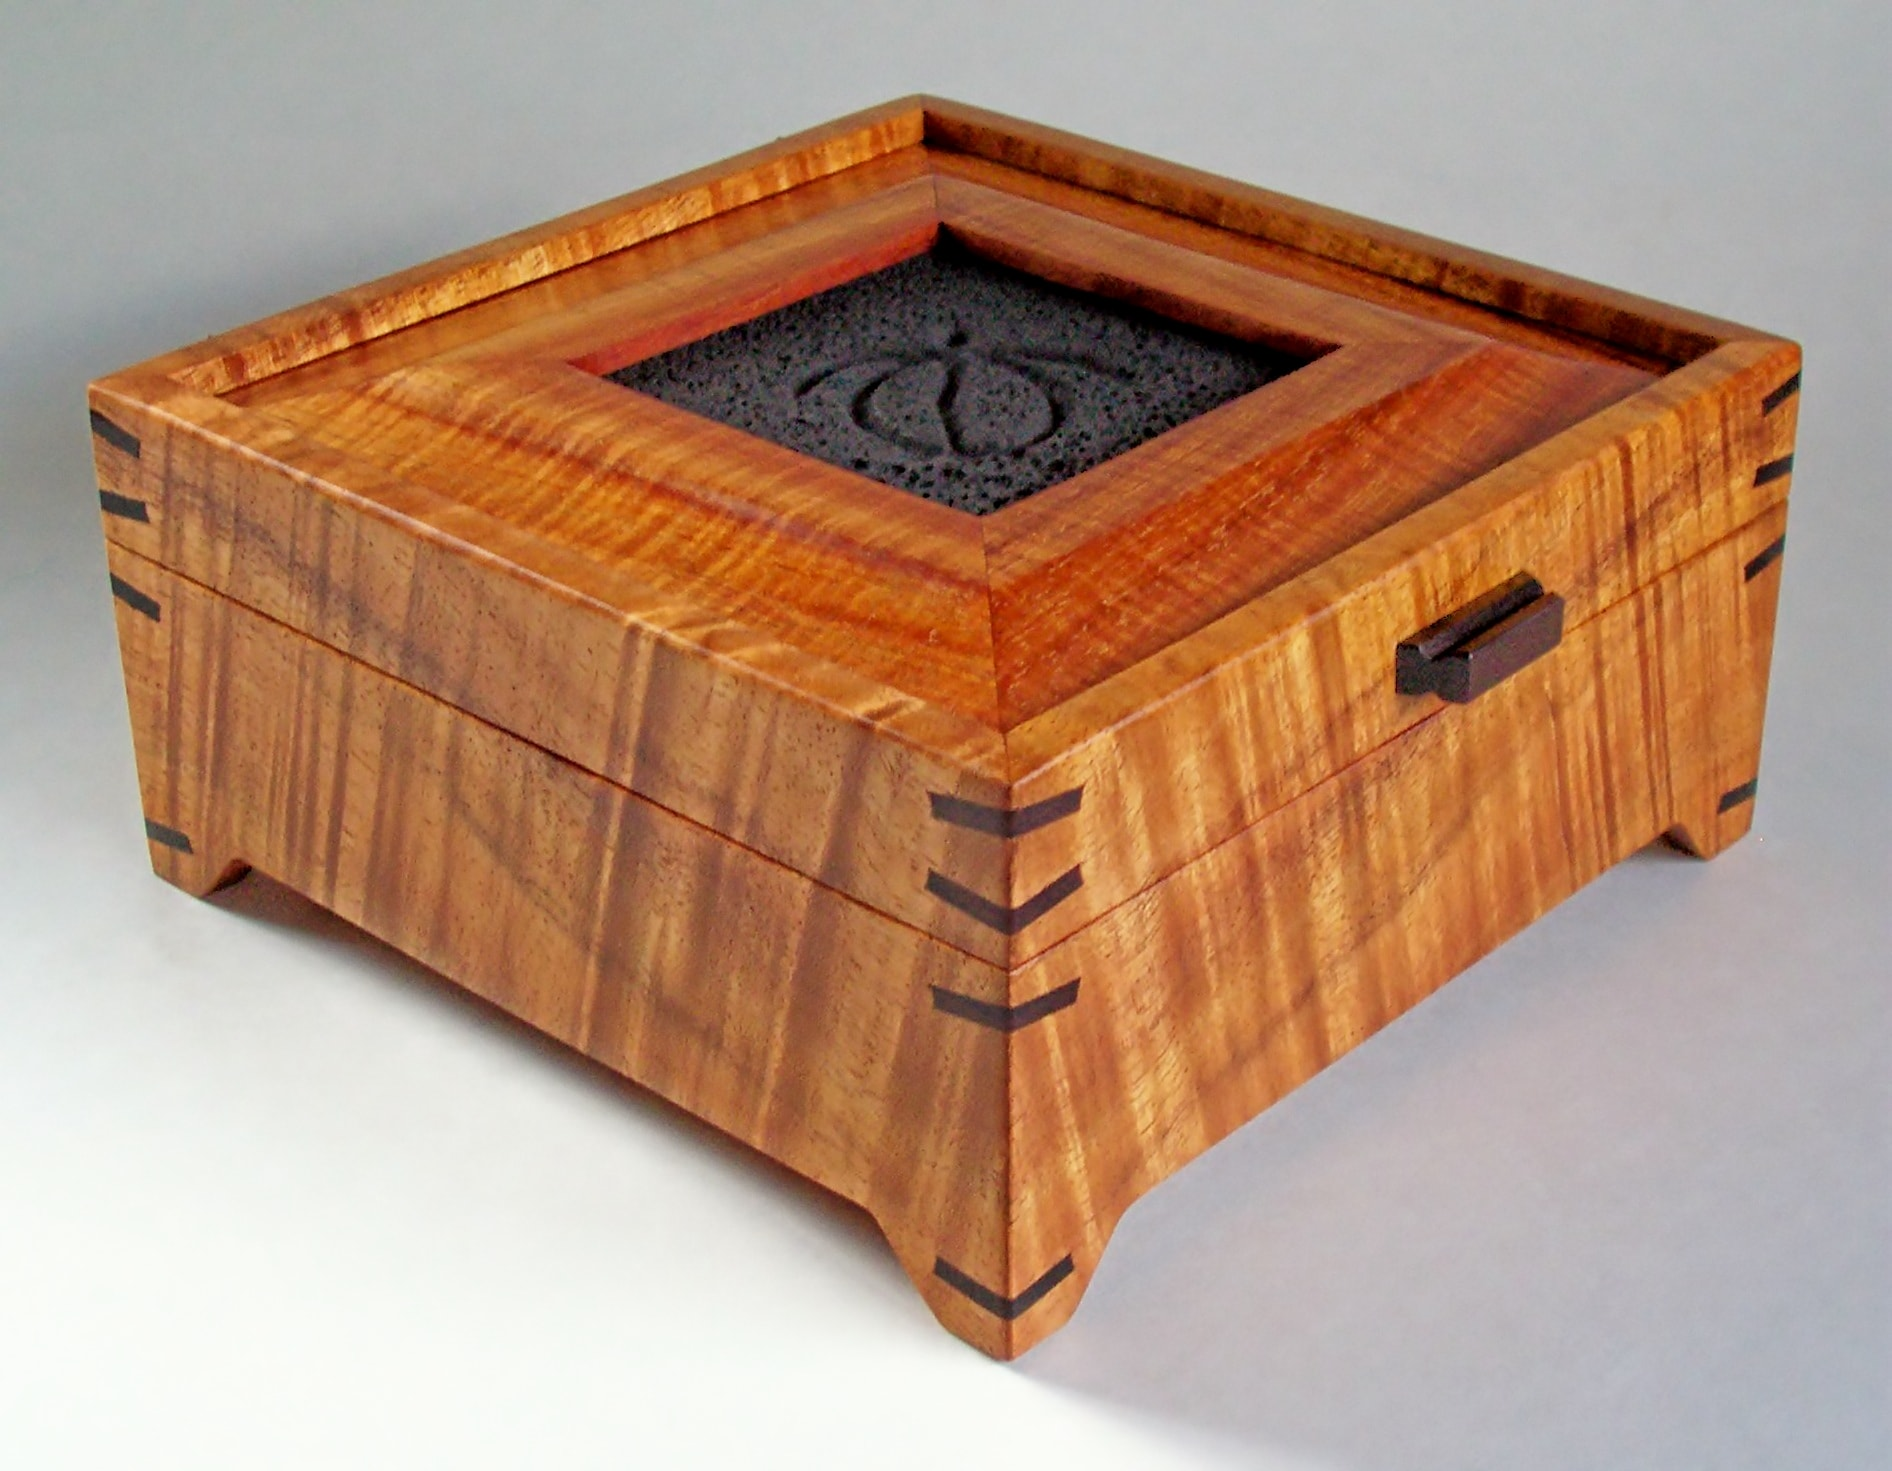 Footed Koa Box with Turtle Tile